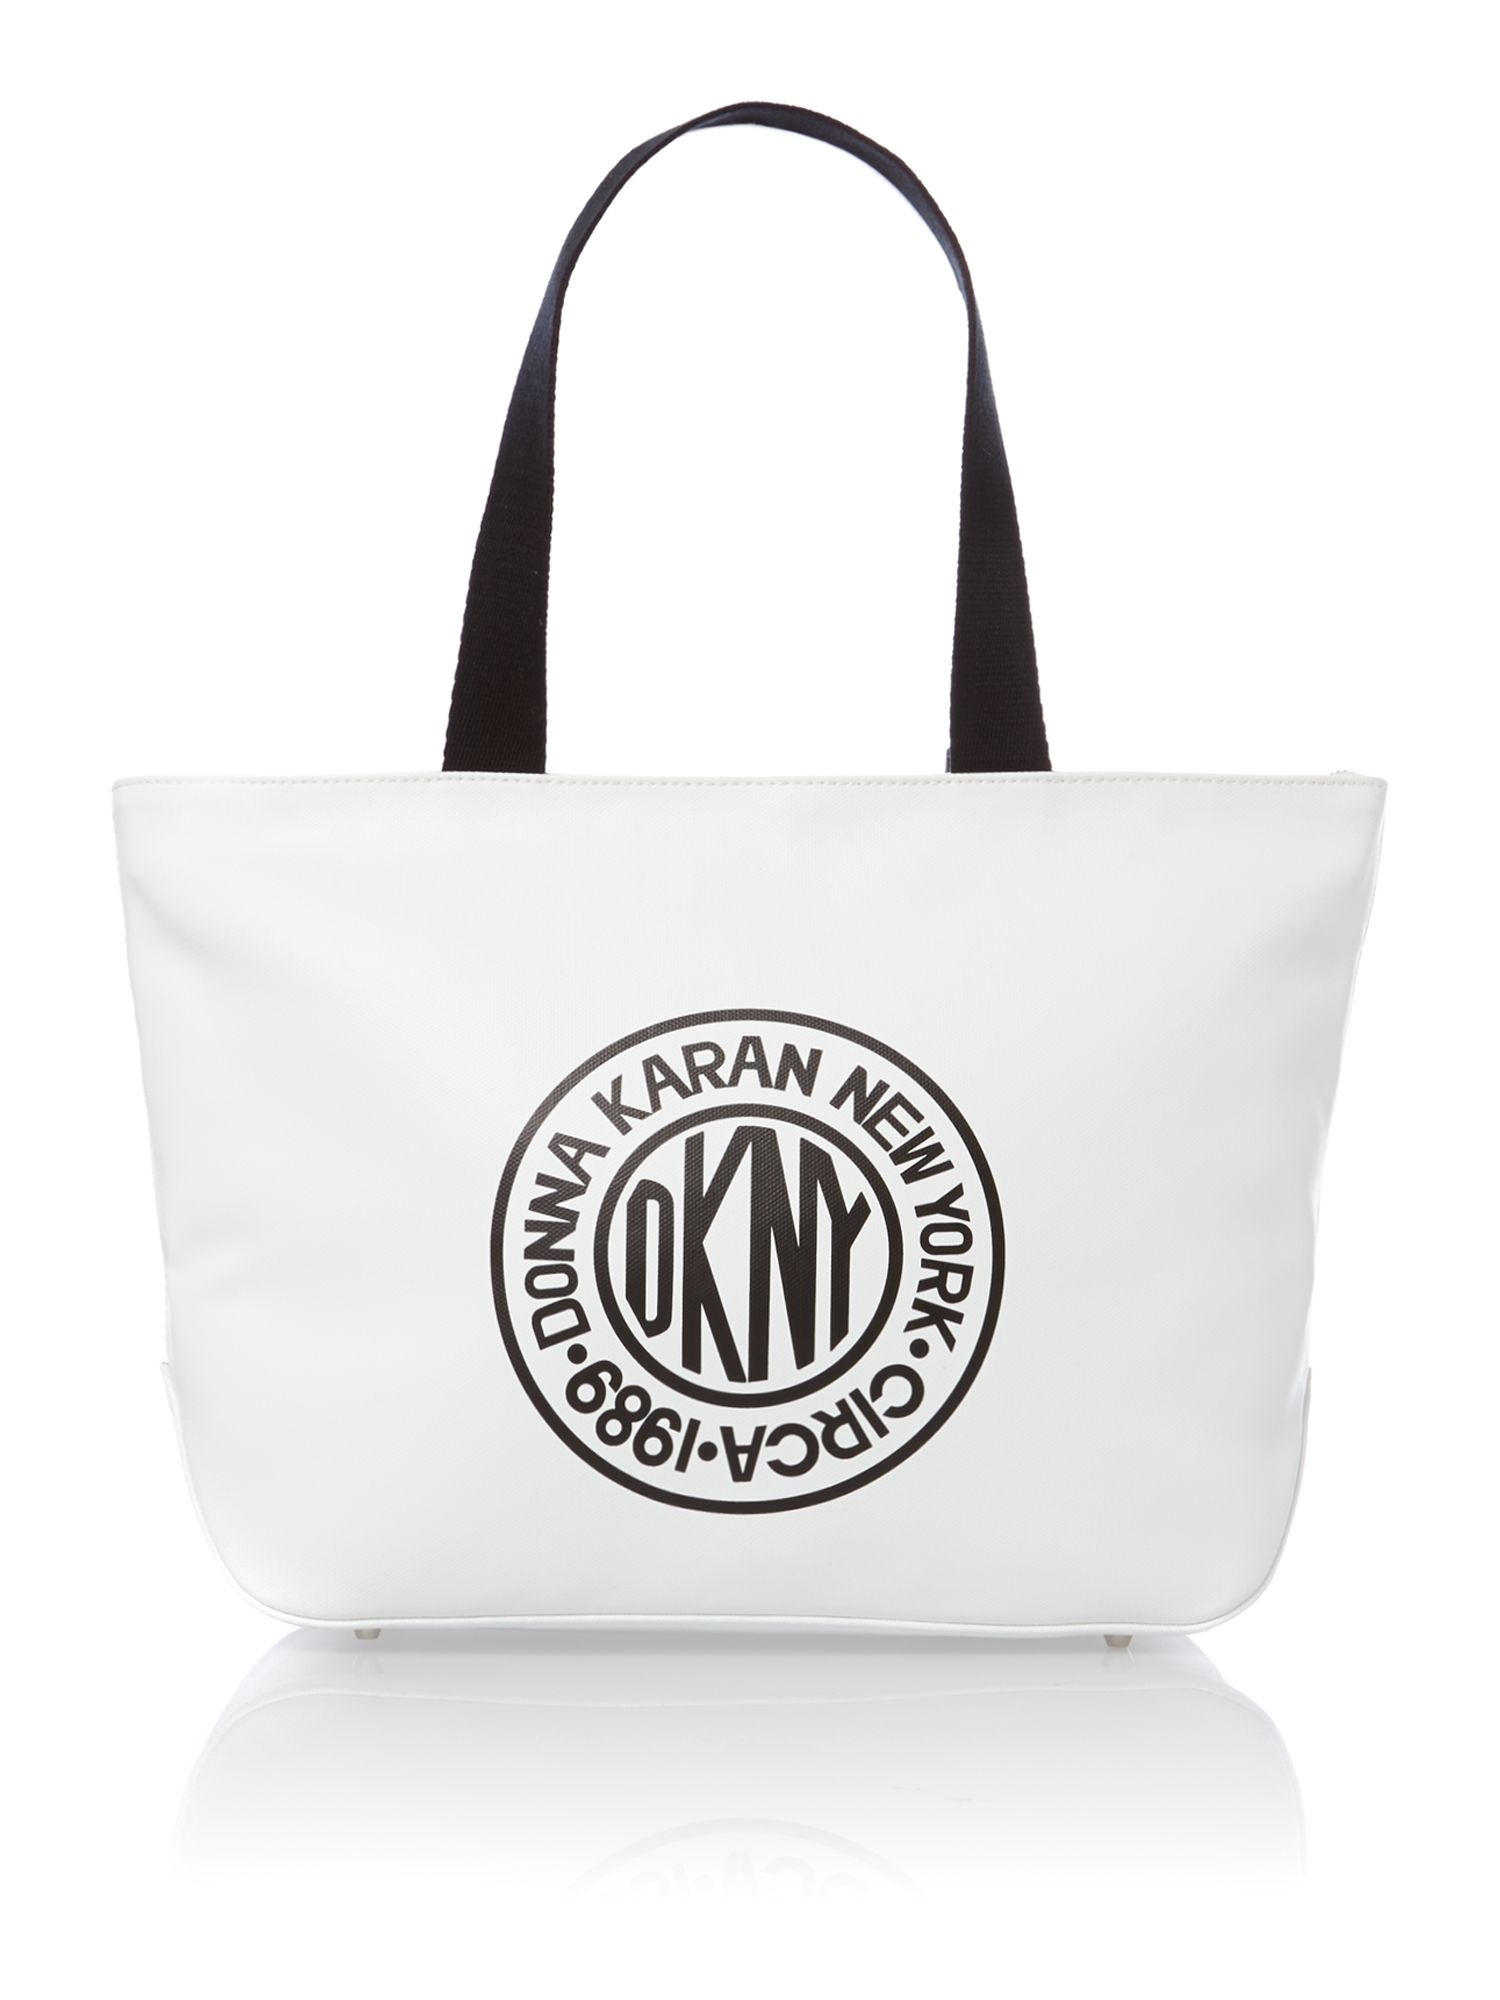 Dkny Canvas Logo White Tote Bag in White | Lyst